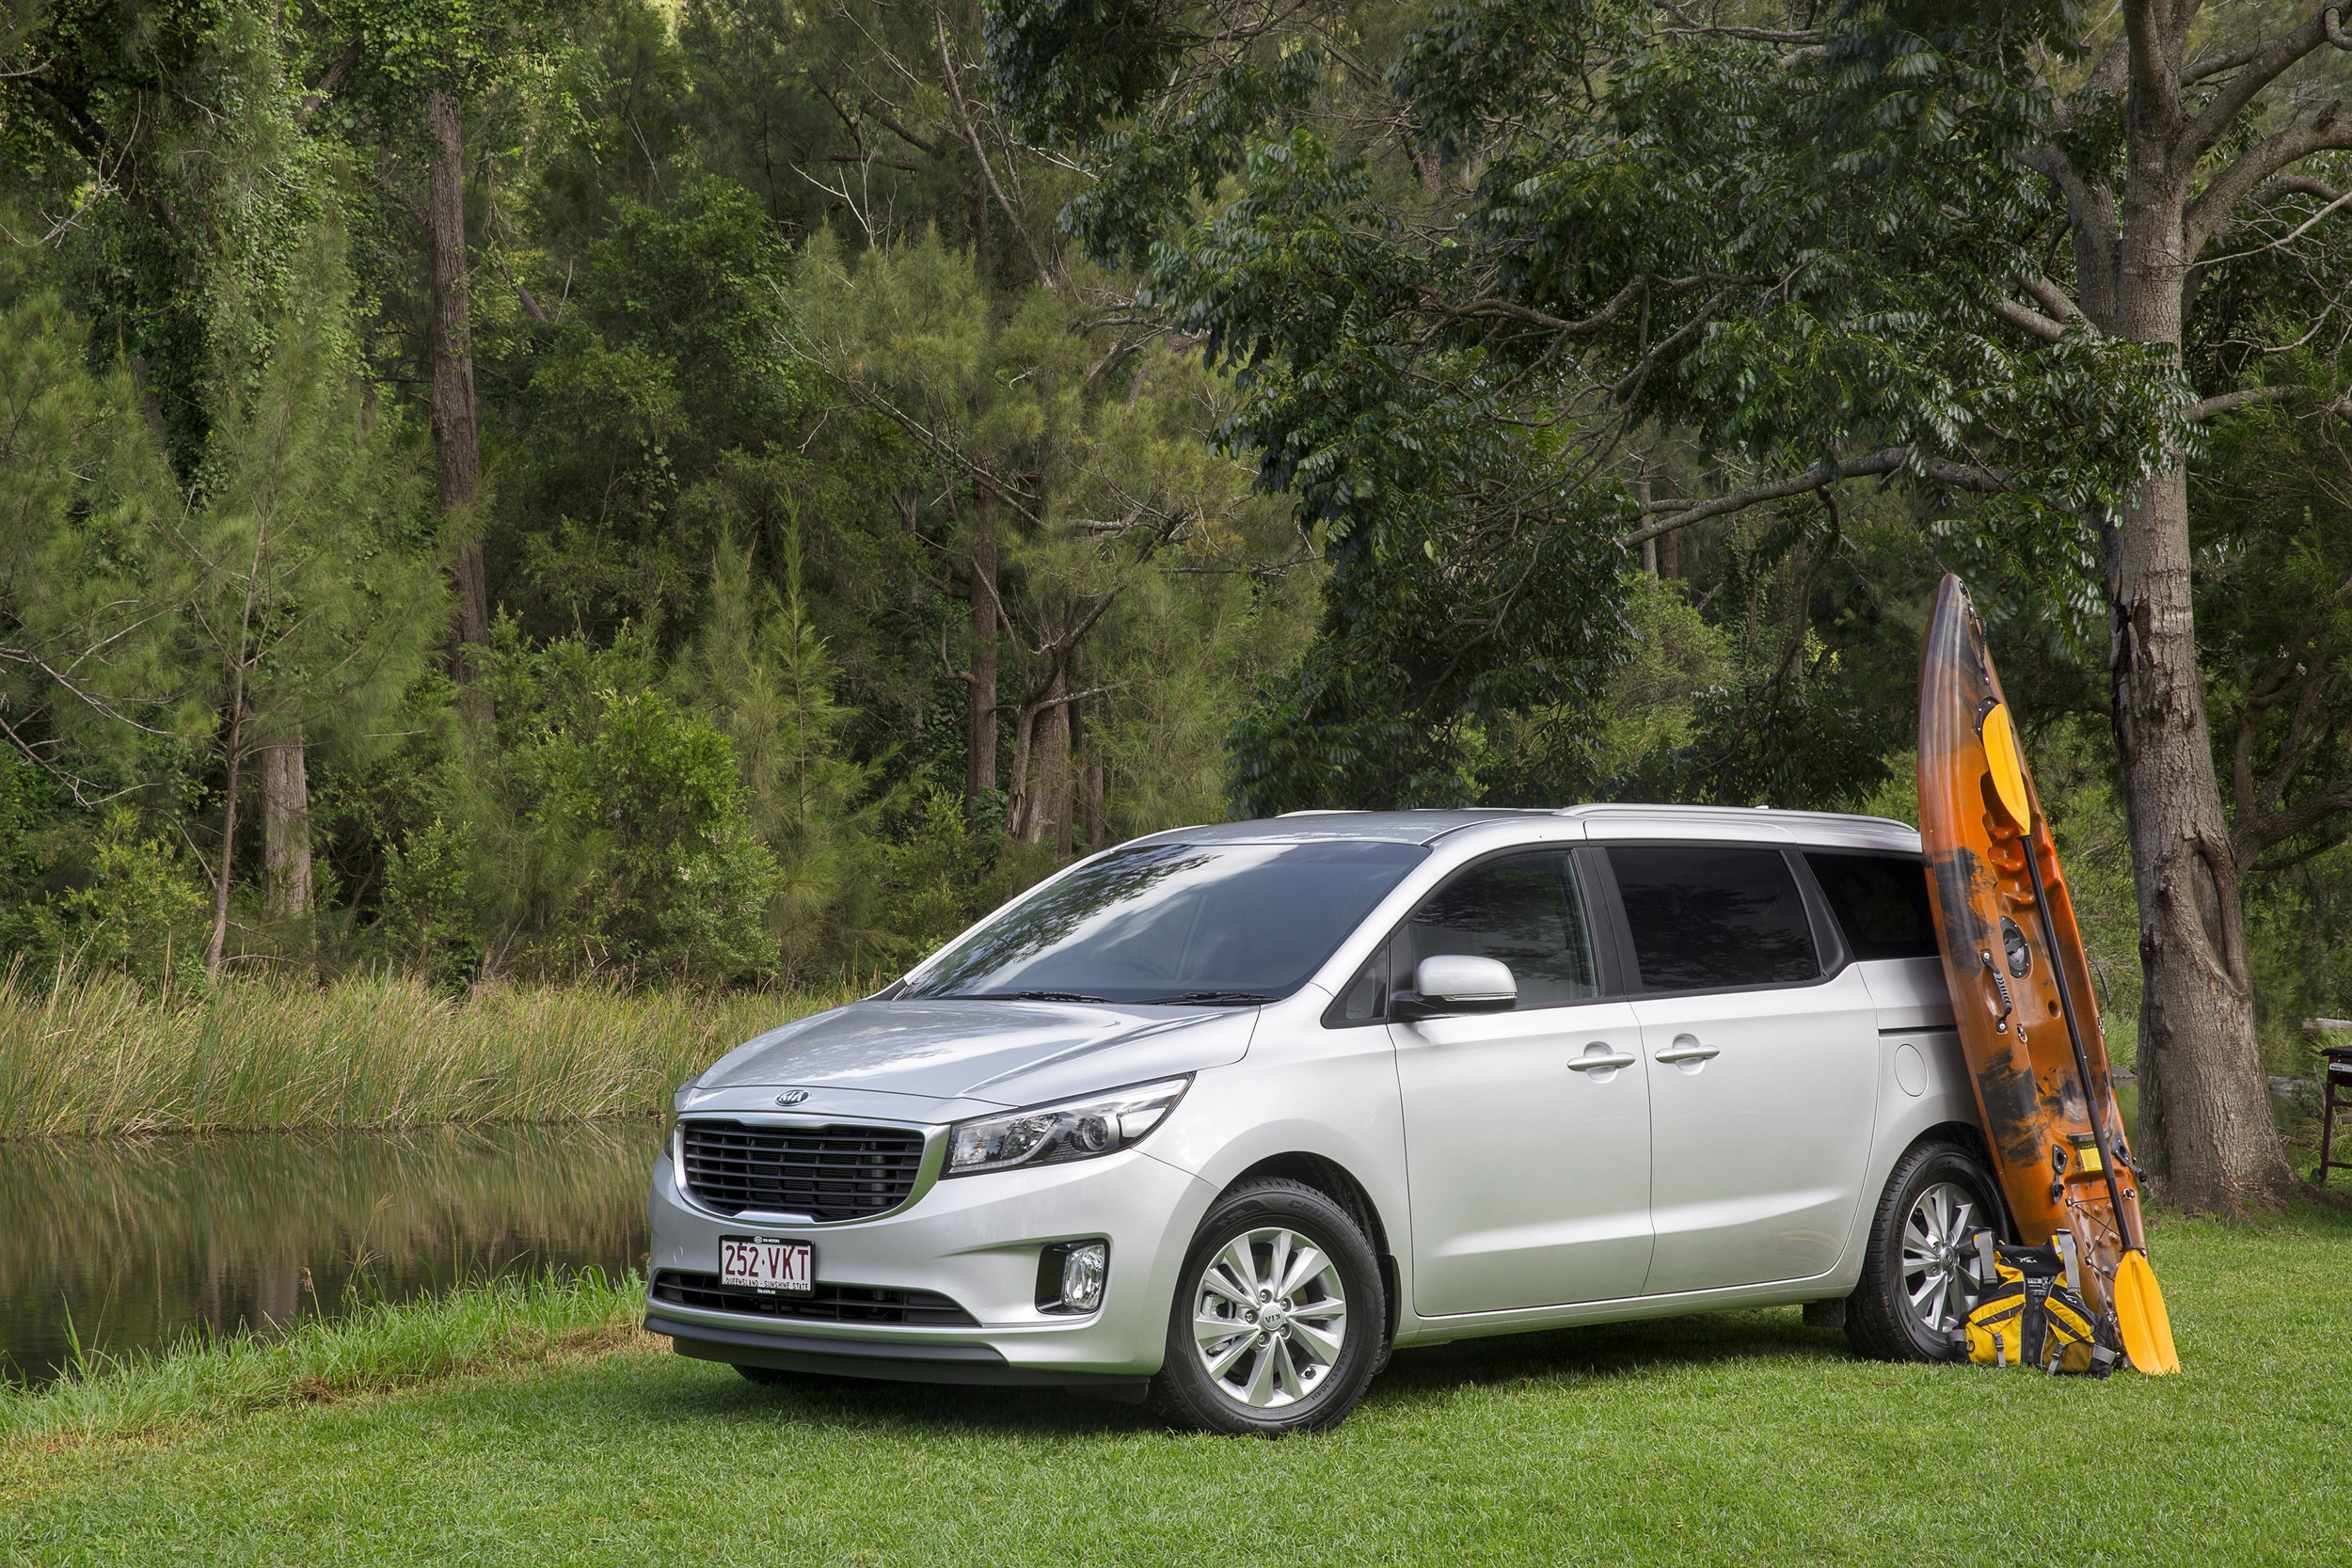 Kia Carnival (at around the same price) is still the winner on moving people and their stuff. It's safer in the 3rd row,too ... but admittedly not as sexy